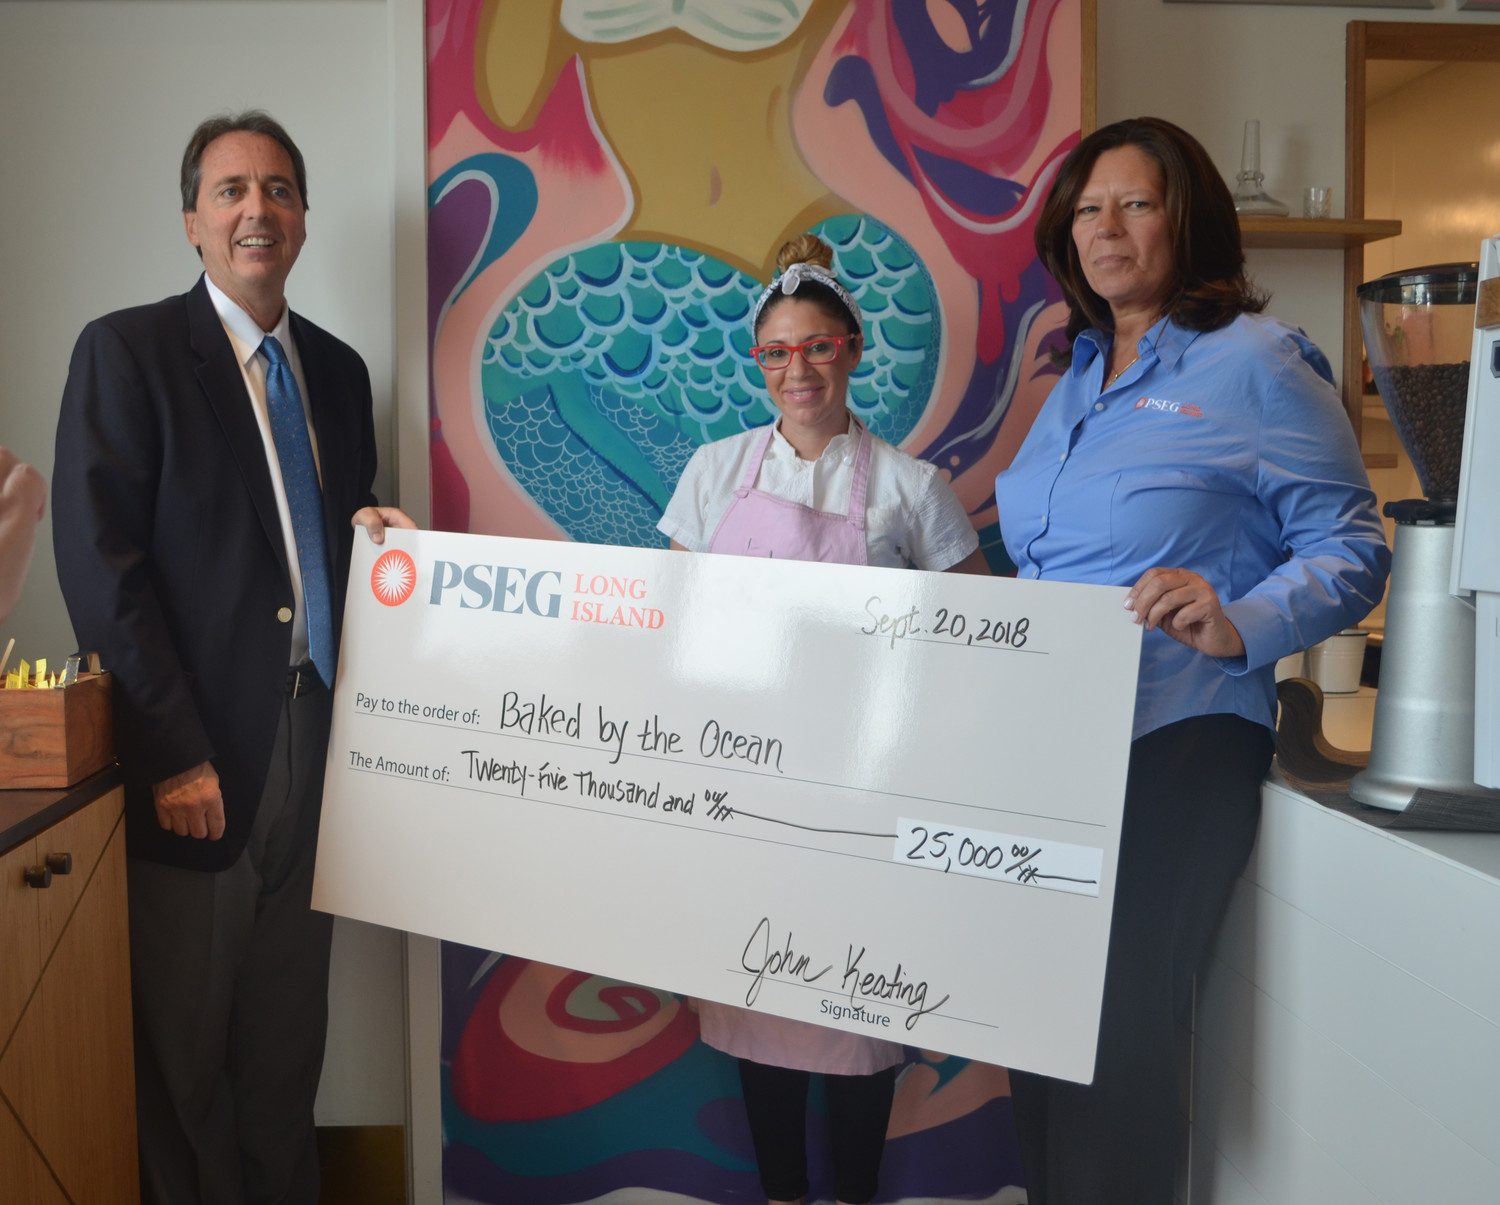 John Keating, manager of economic development for PSEG Long Island, left, and Linda Herman, economic development specialist at PSEG, far right, presented Baked by the Ocean owner Catherine Schimenti with a $25,000 check for building her business with energy efficient equipment.